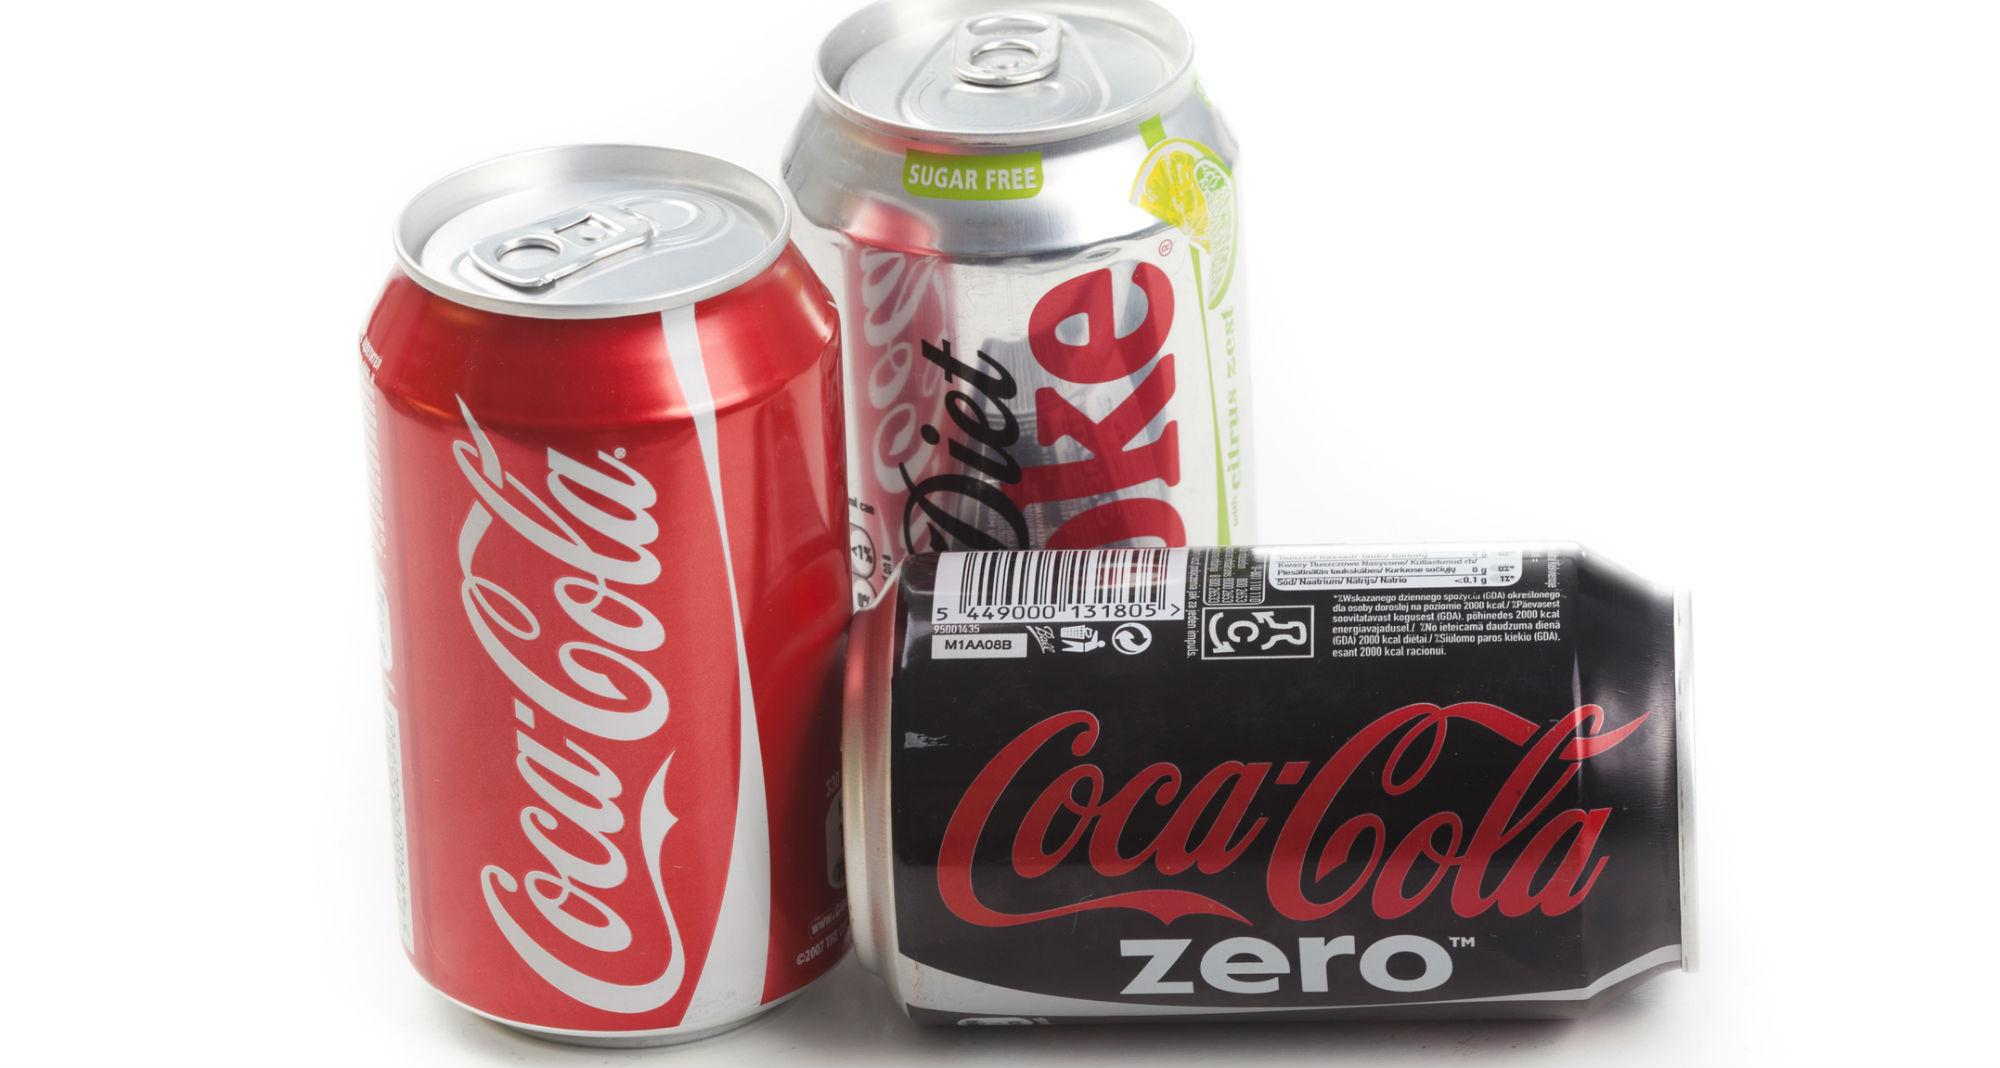 Difference between Coke Zero and Diet Coke?